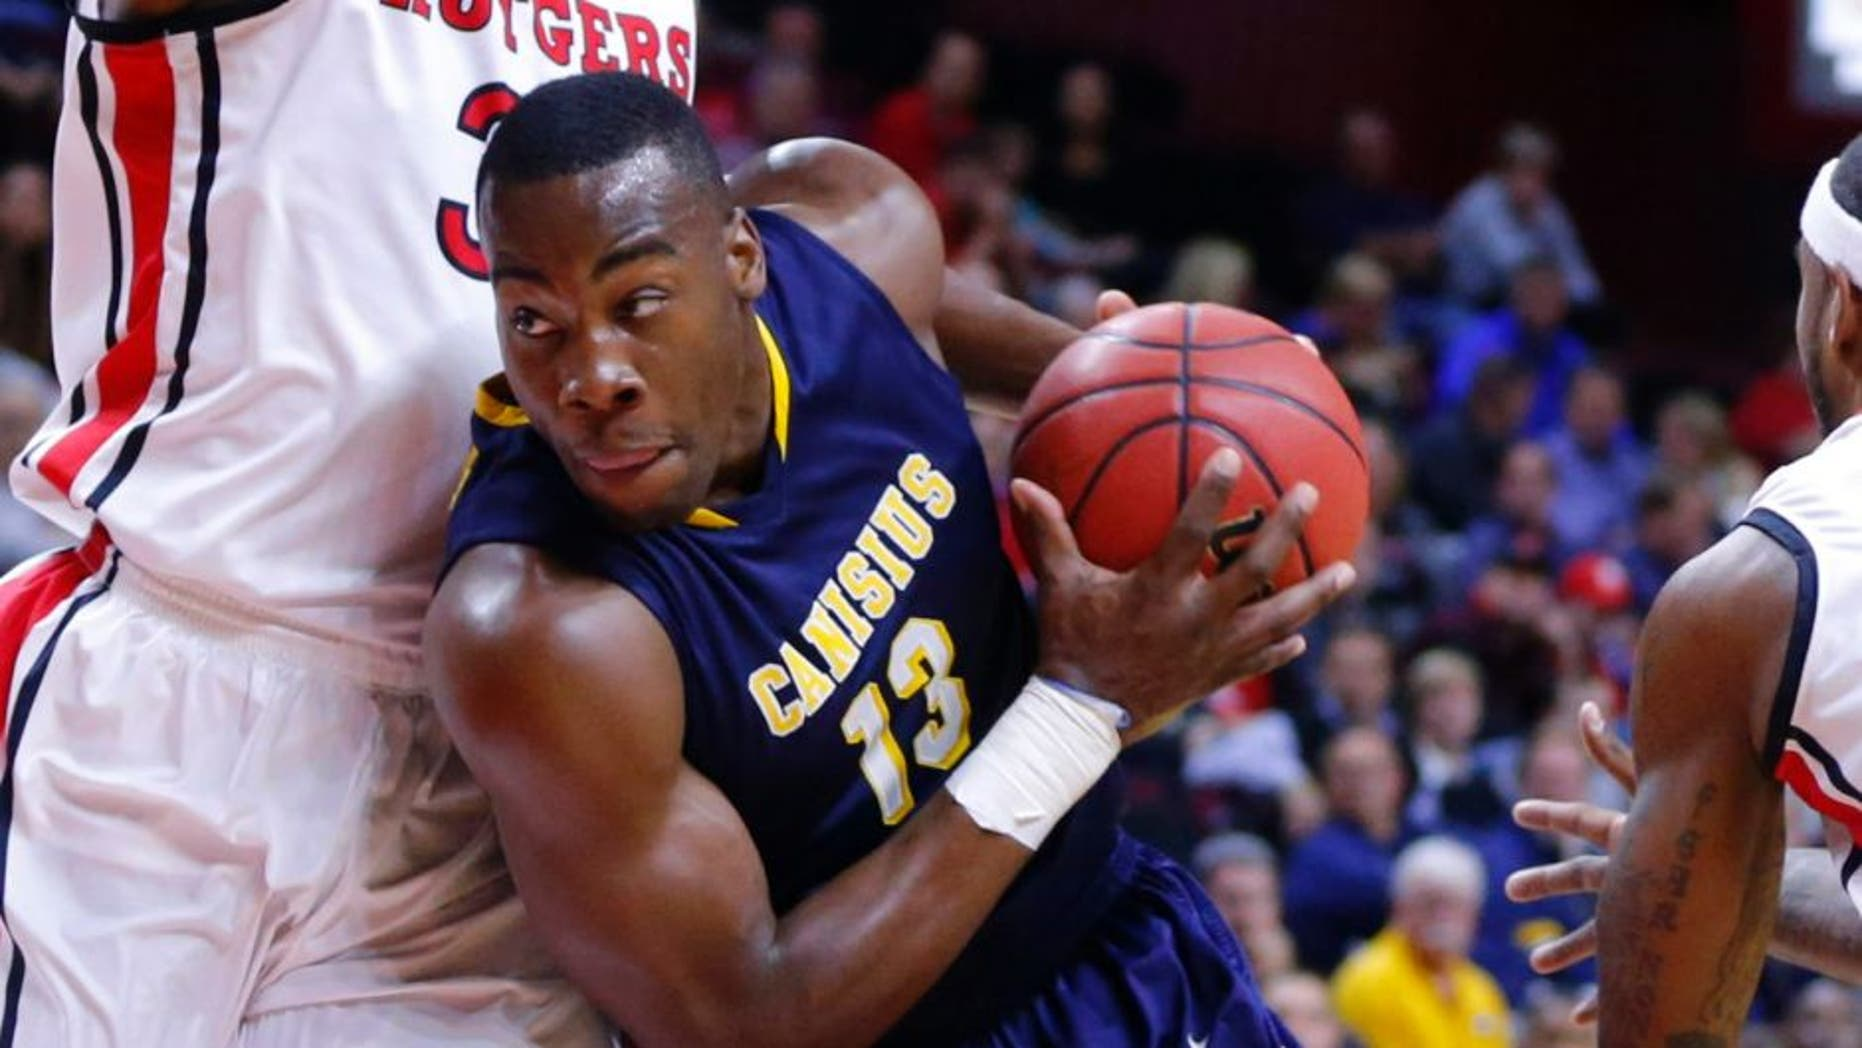 Nov 18, 2013; Piscataway, NJ, USA; Canisius Golden Griffins forward Chris Manhertz (13) drives to the basket during the first half against Rutgers Scarlet Knights forward Wally Judge (33) at the Louis Brown Athletic Center. Mandatory Credit: Jim O'Connor-USA TODAY Sports